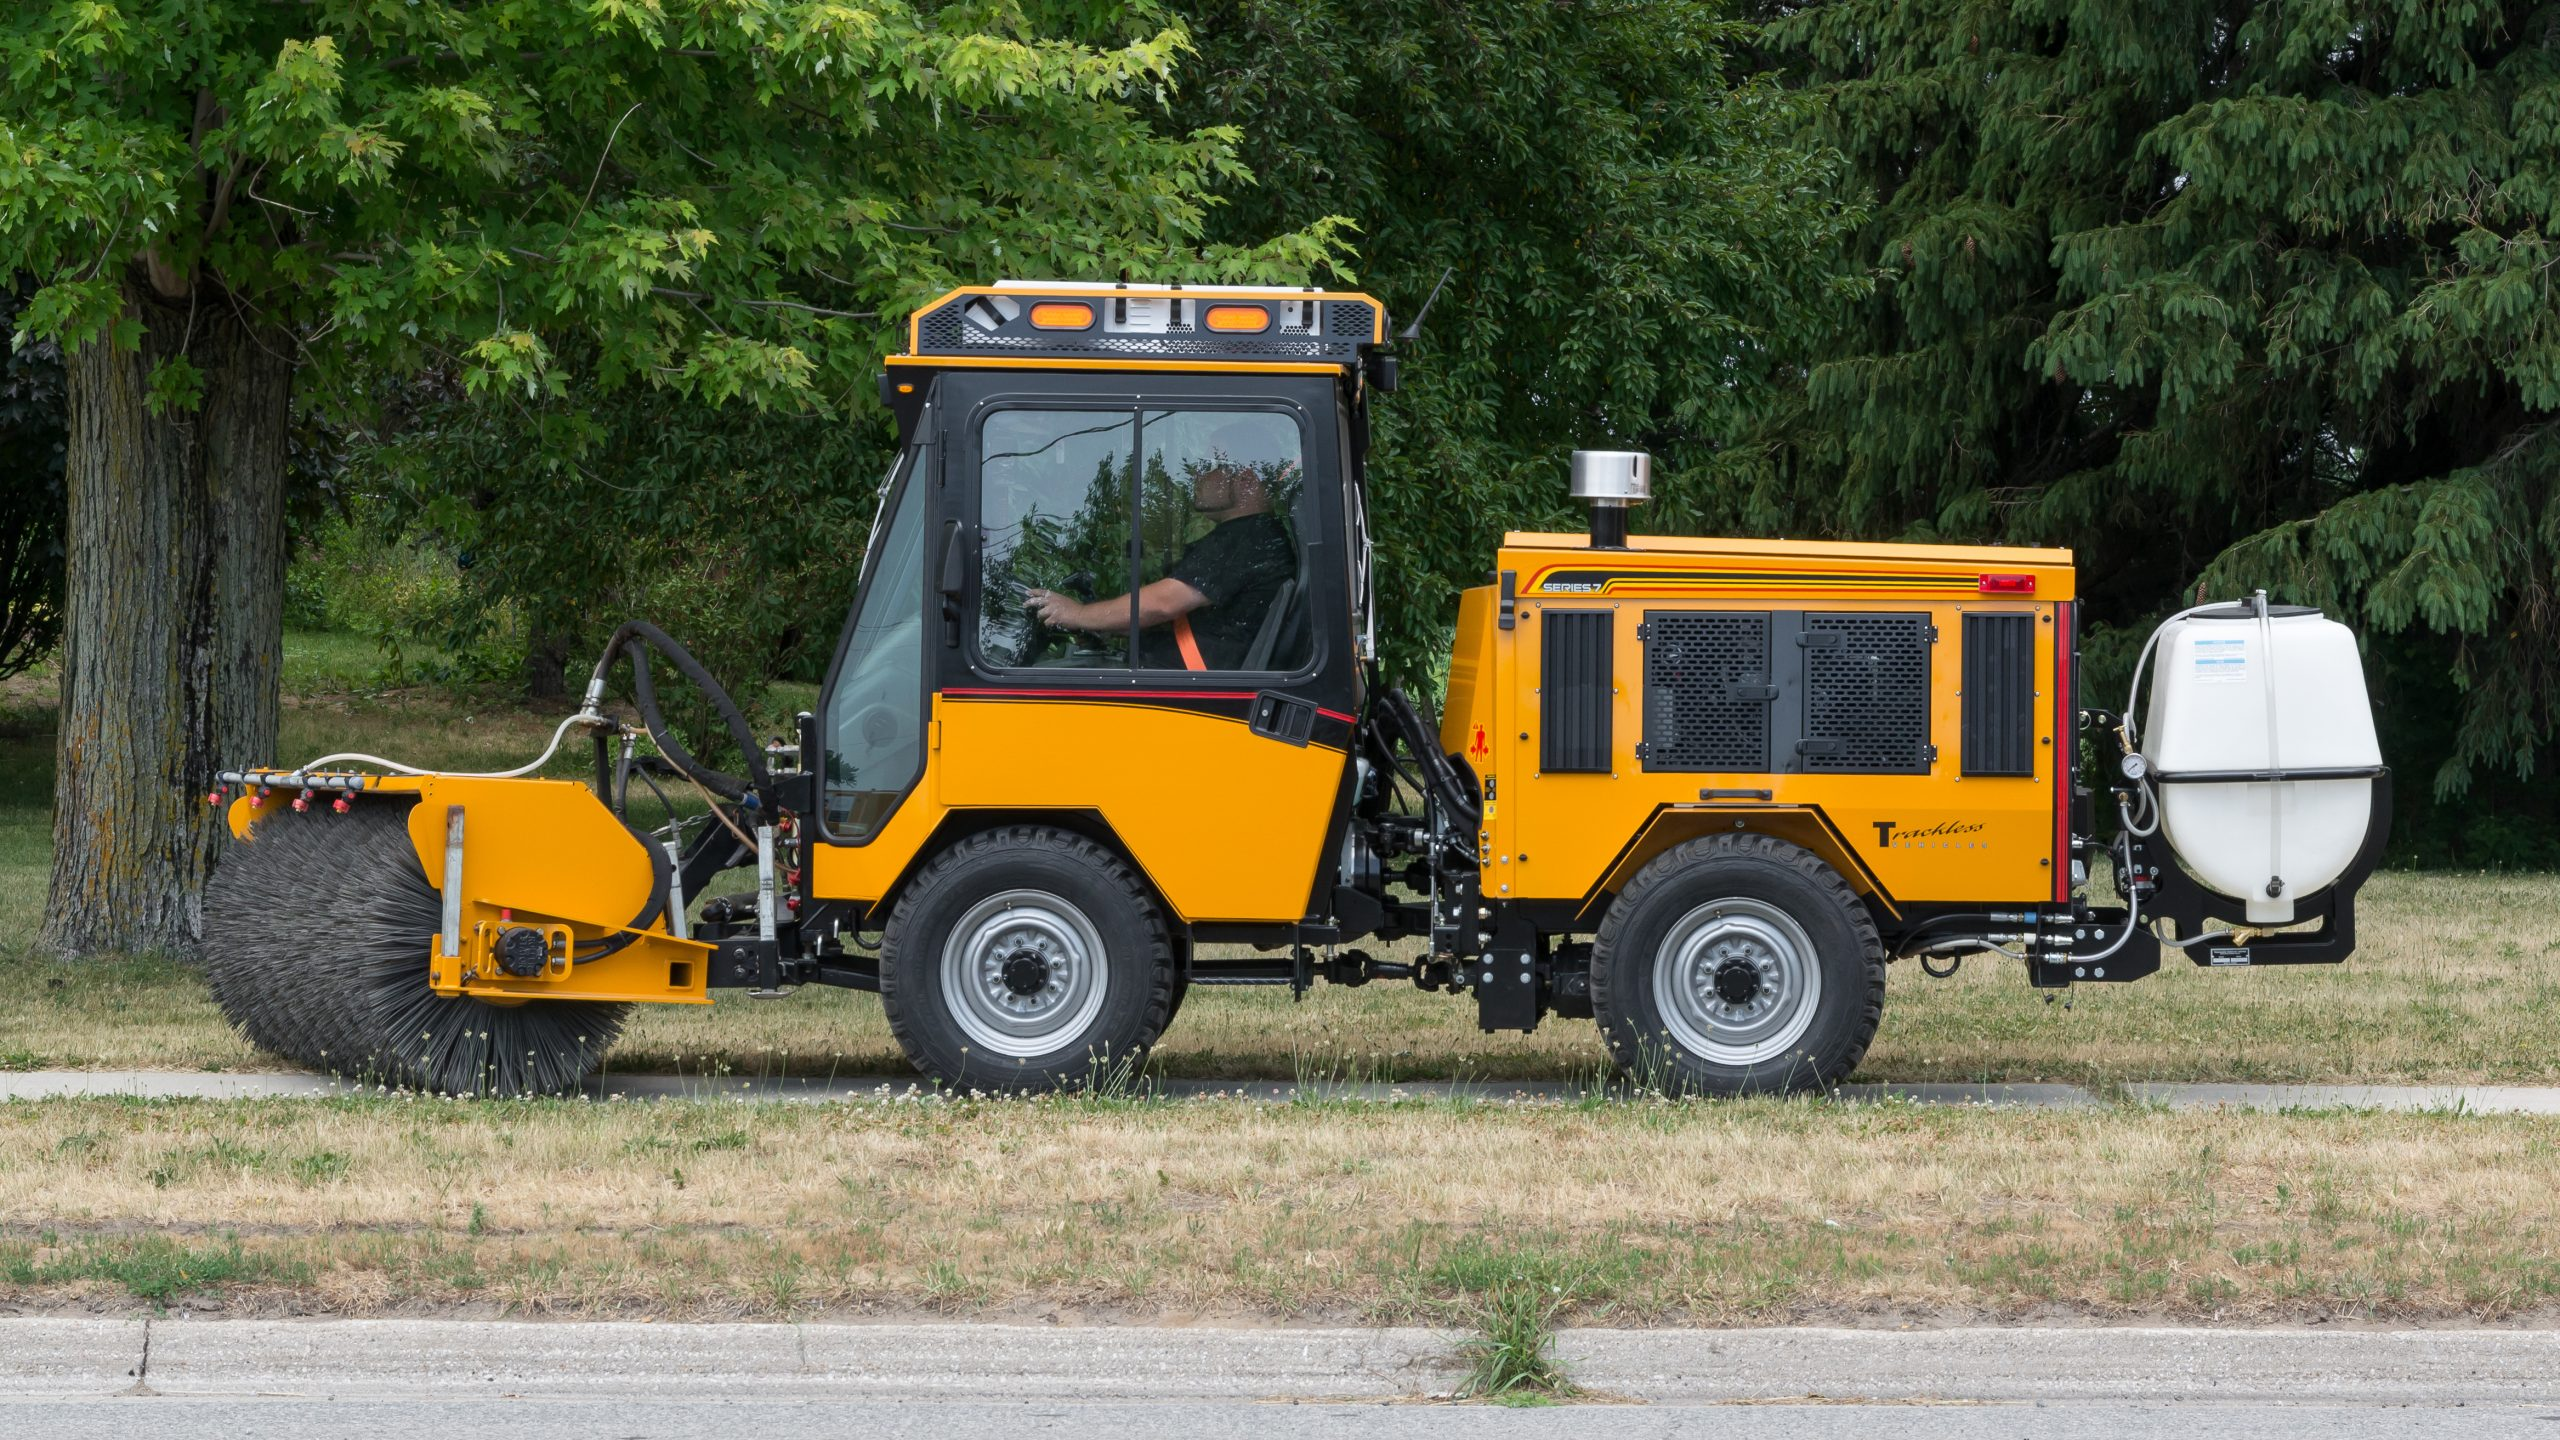 trackless vehicles power angle sweeper with spray bar option on mt7 with water tank